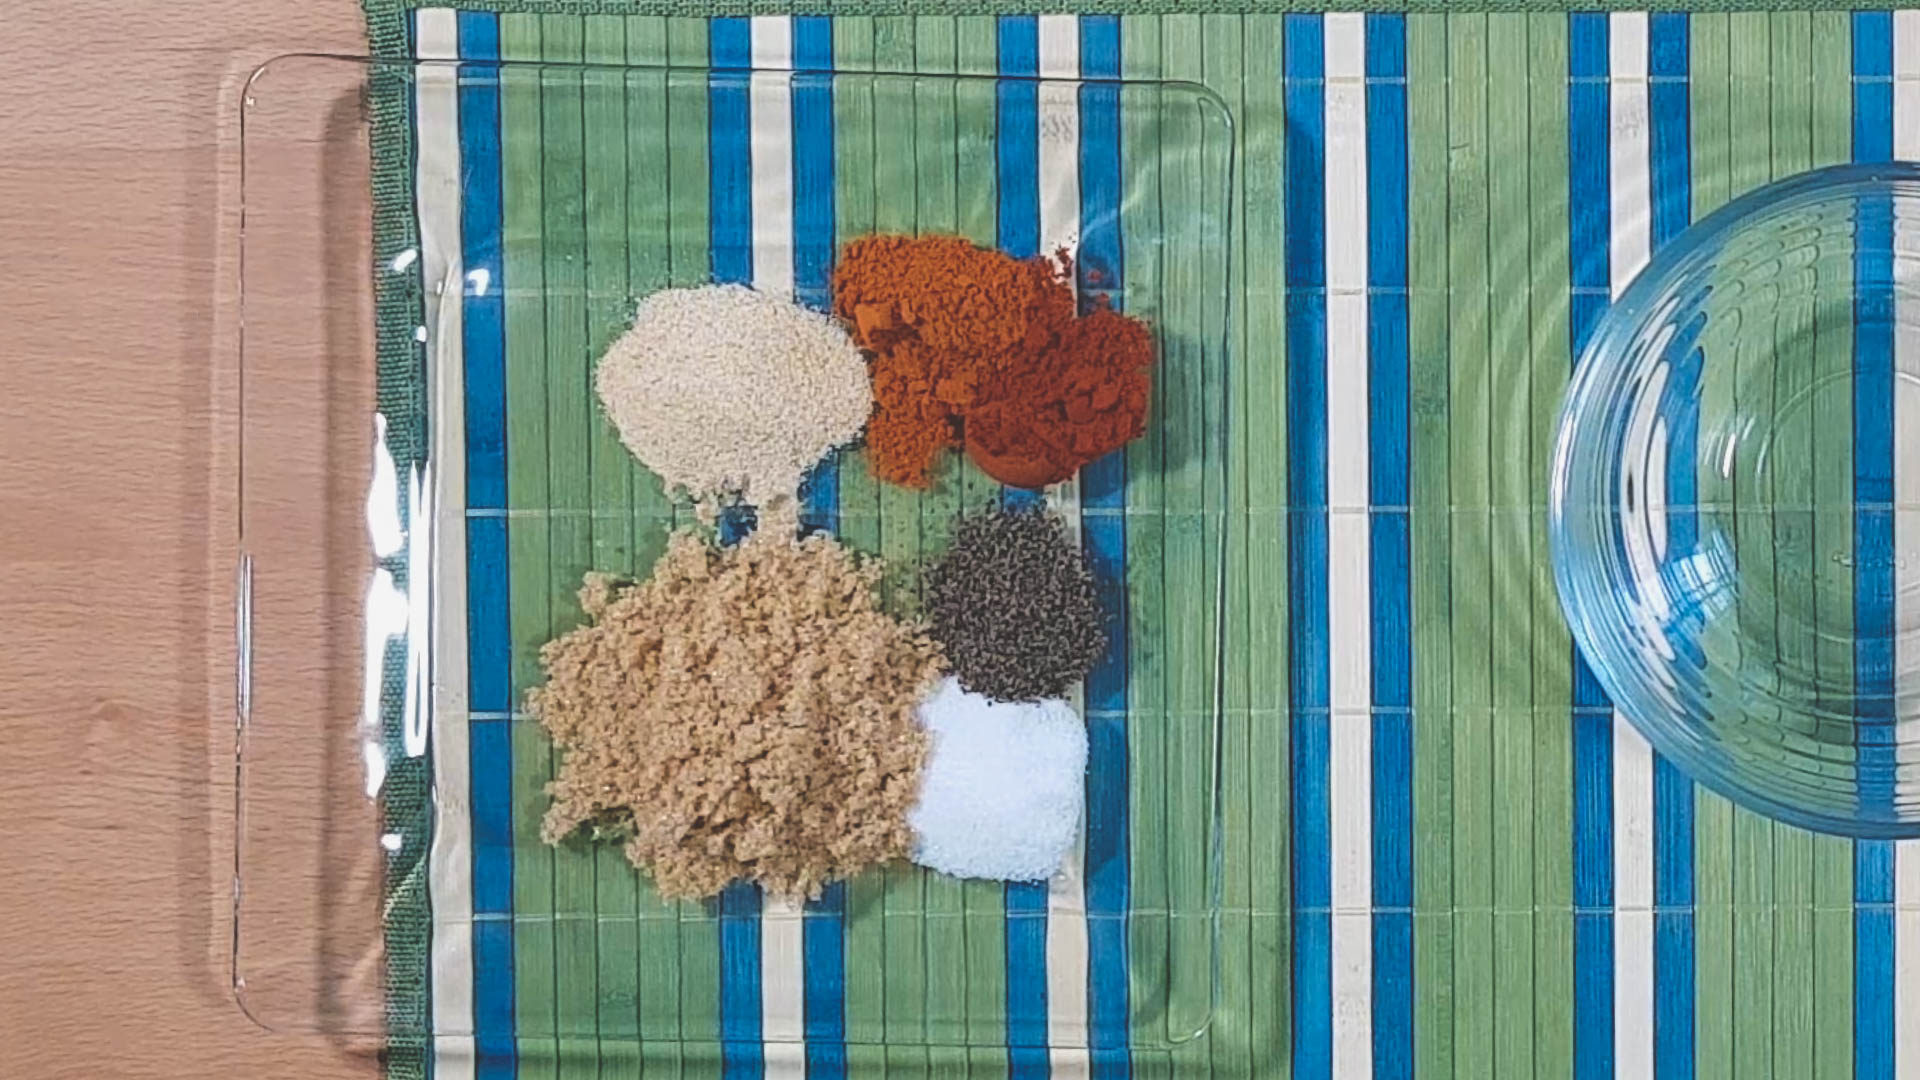 The Ingredients Needed for the Easy Smoked BBQ Chicken Seasoning Mix